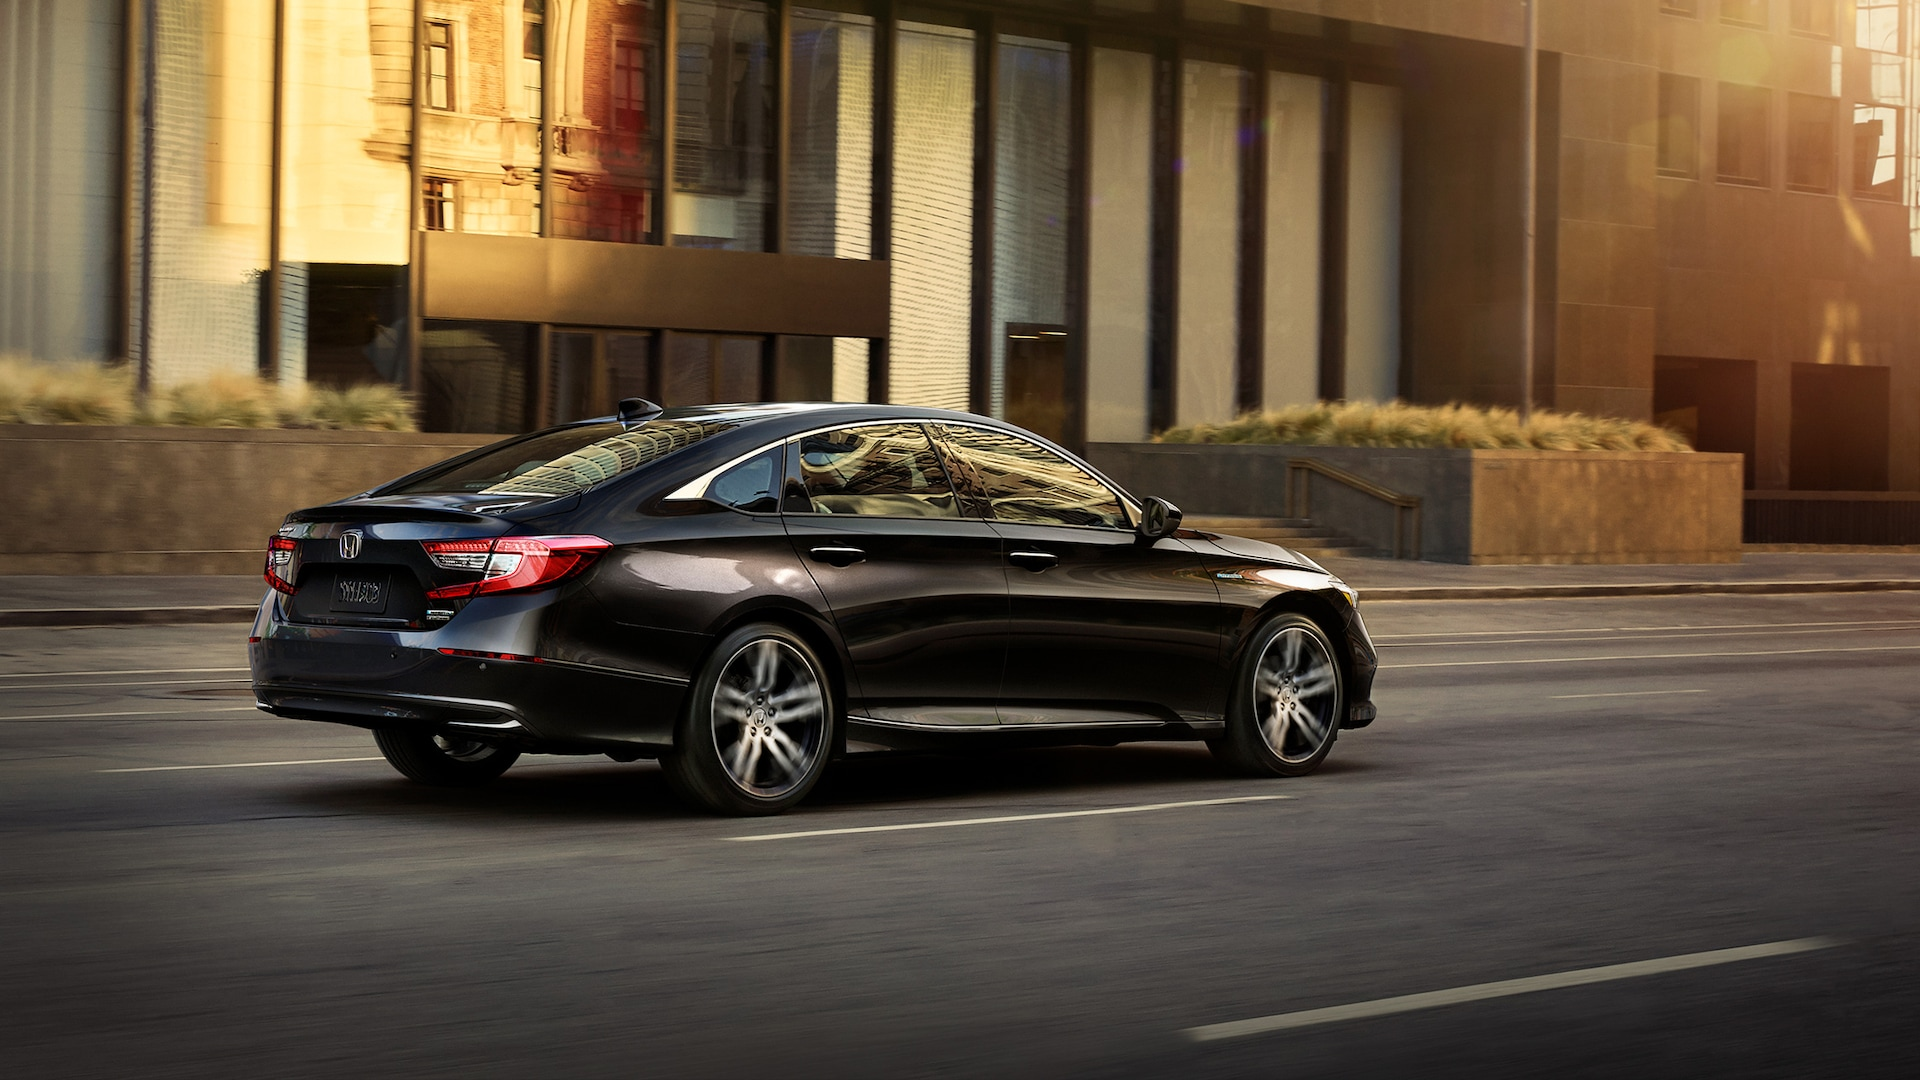 Oblique passenger-side view of the 2021 Accord Hybrid, shown in Crystal Black Pearl, driving through an urban city environment at sunset.